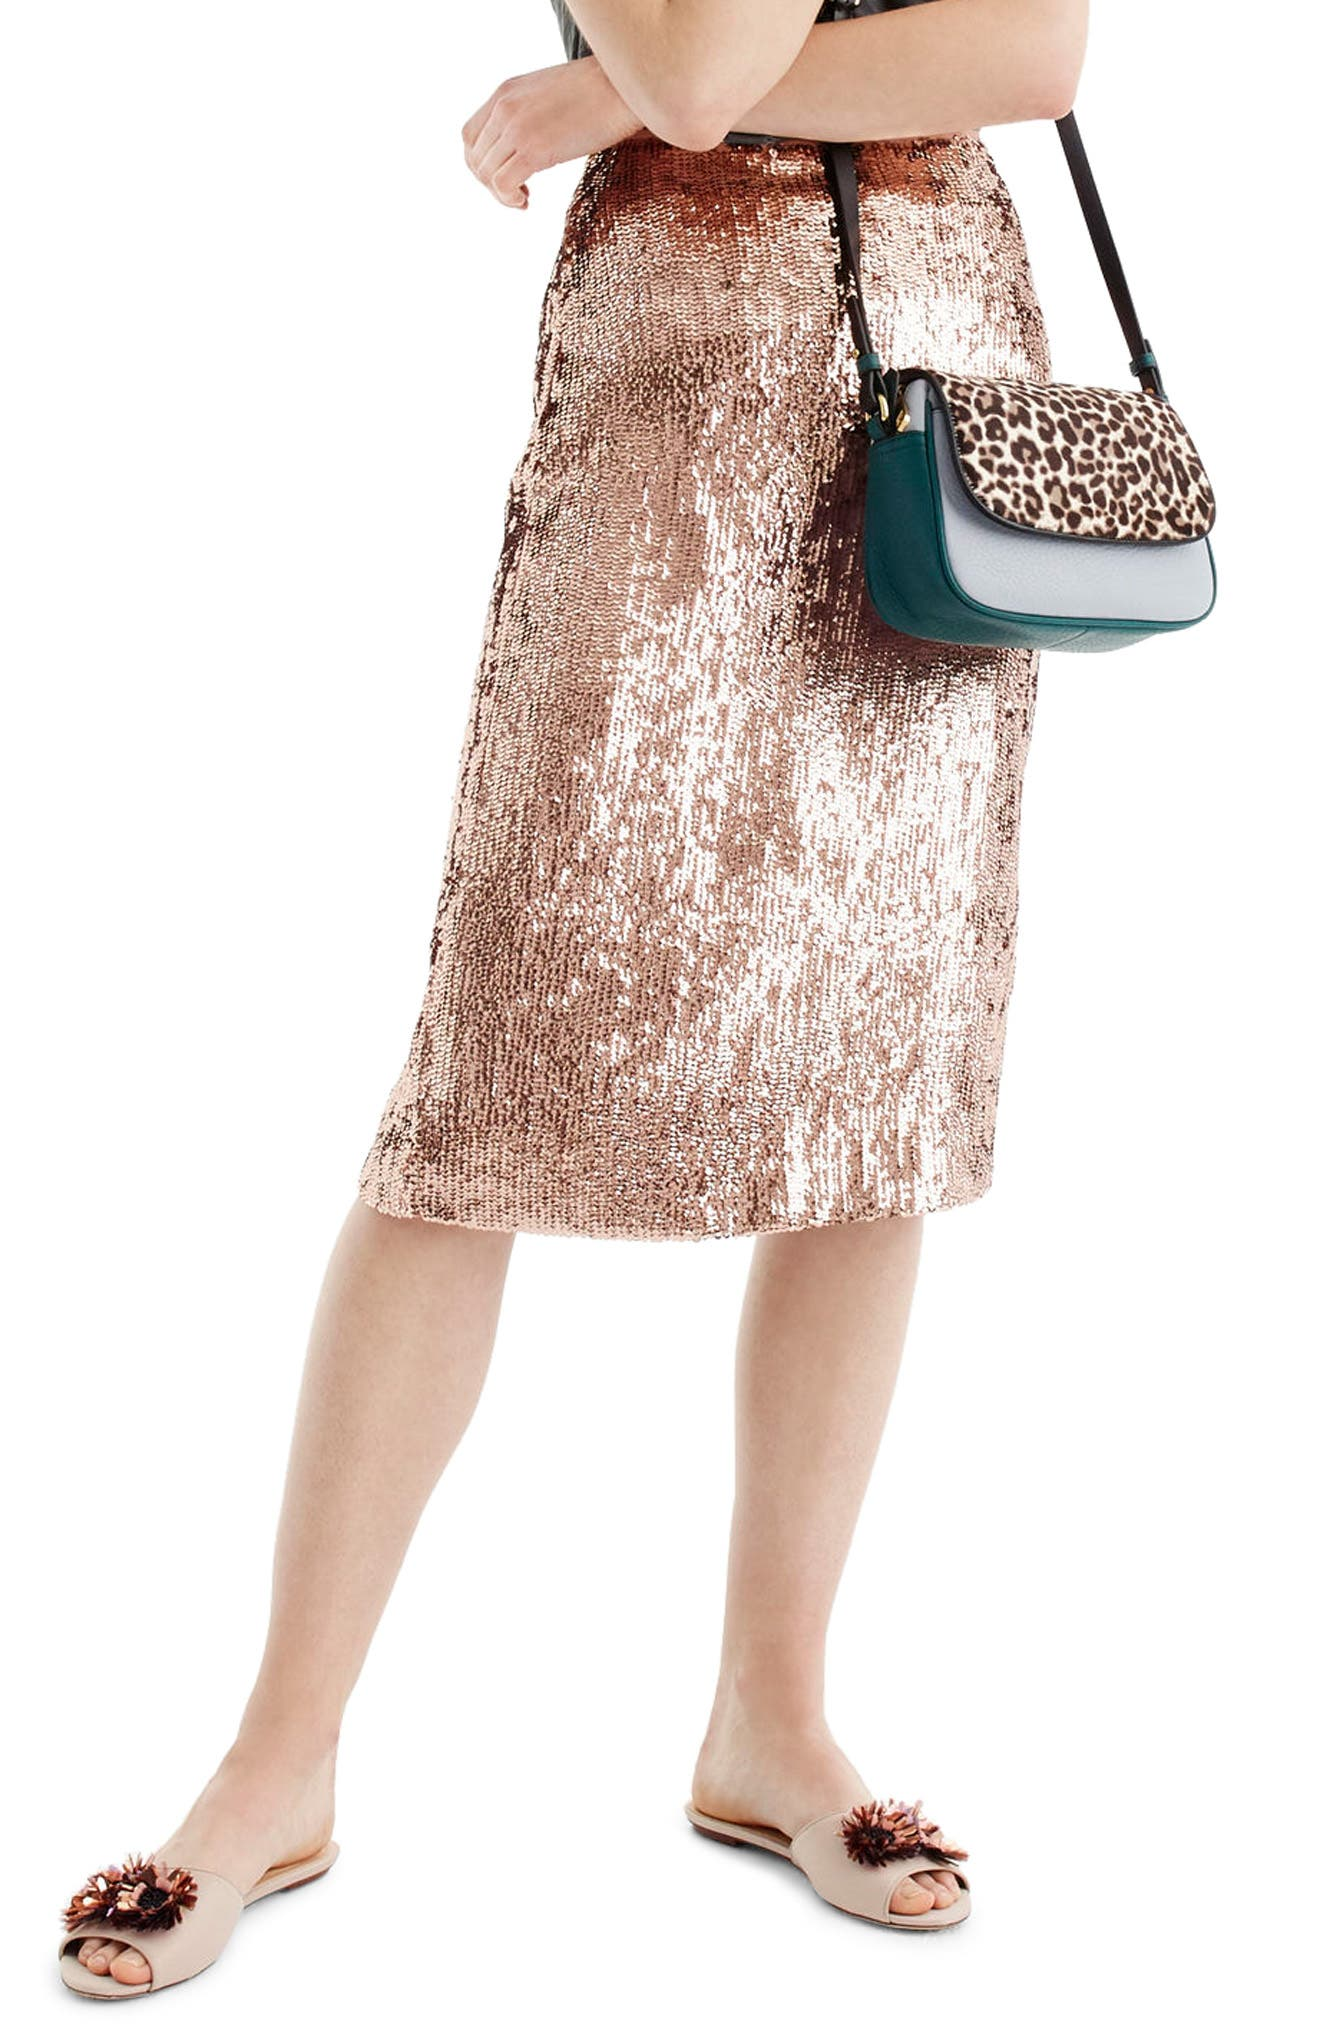 Rose Gold Sequin Skirt,                             Main thumbnail 1, color,                             049